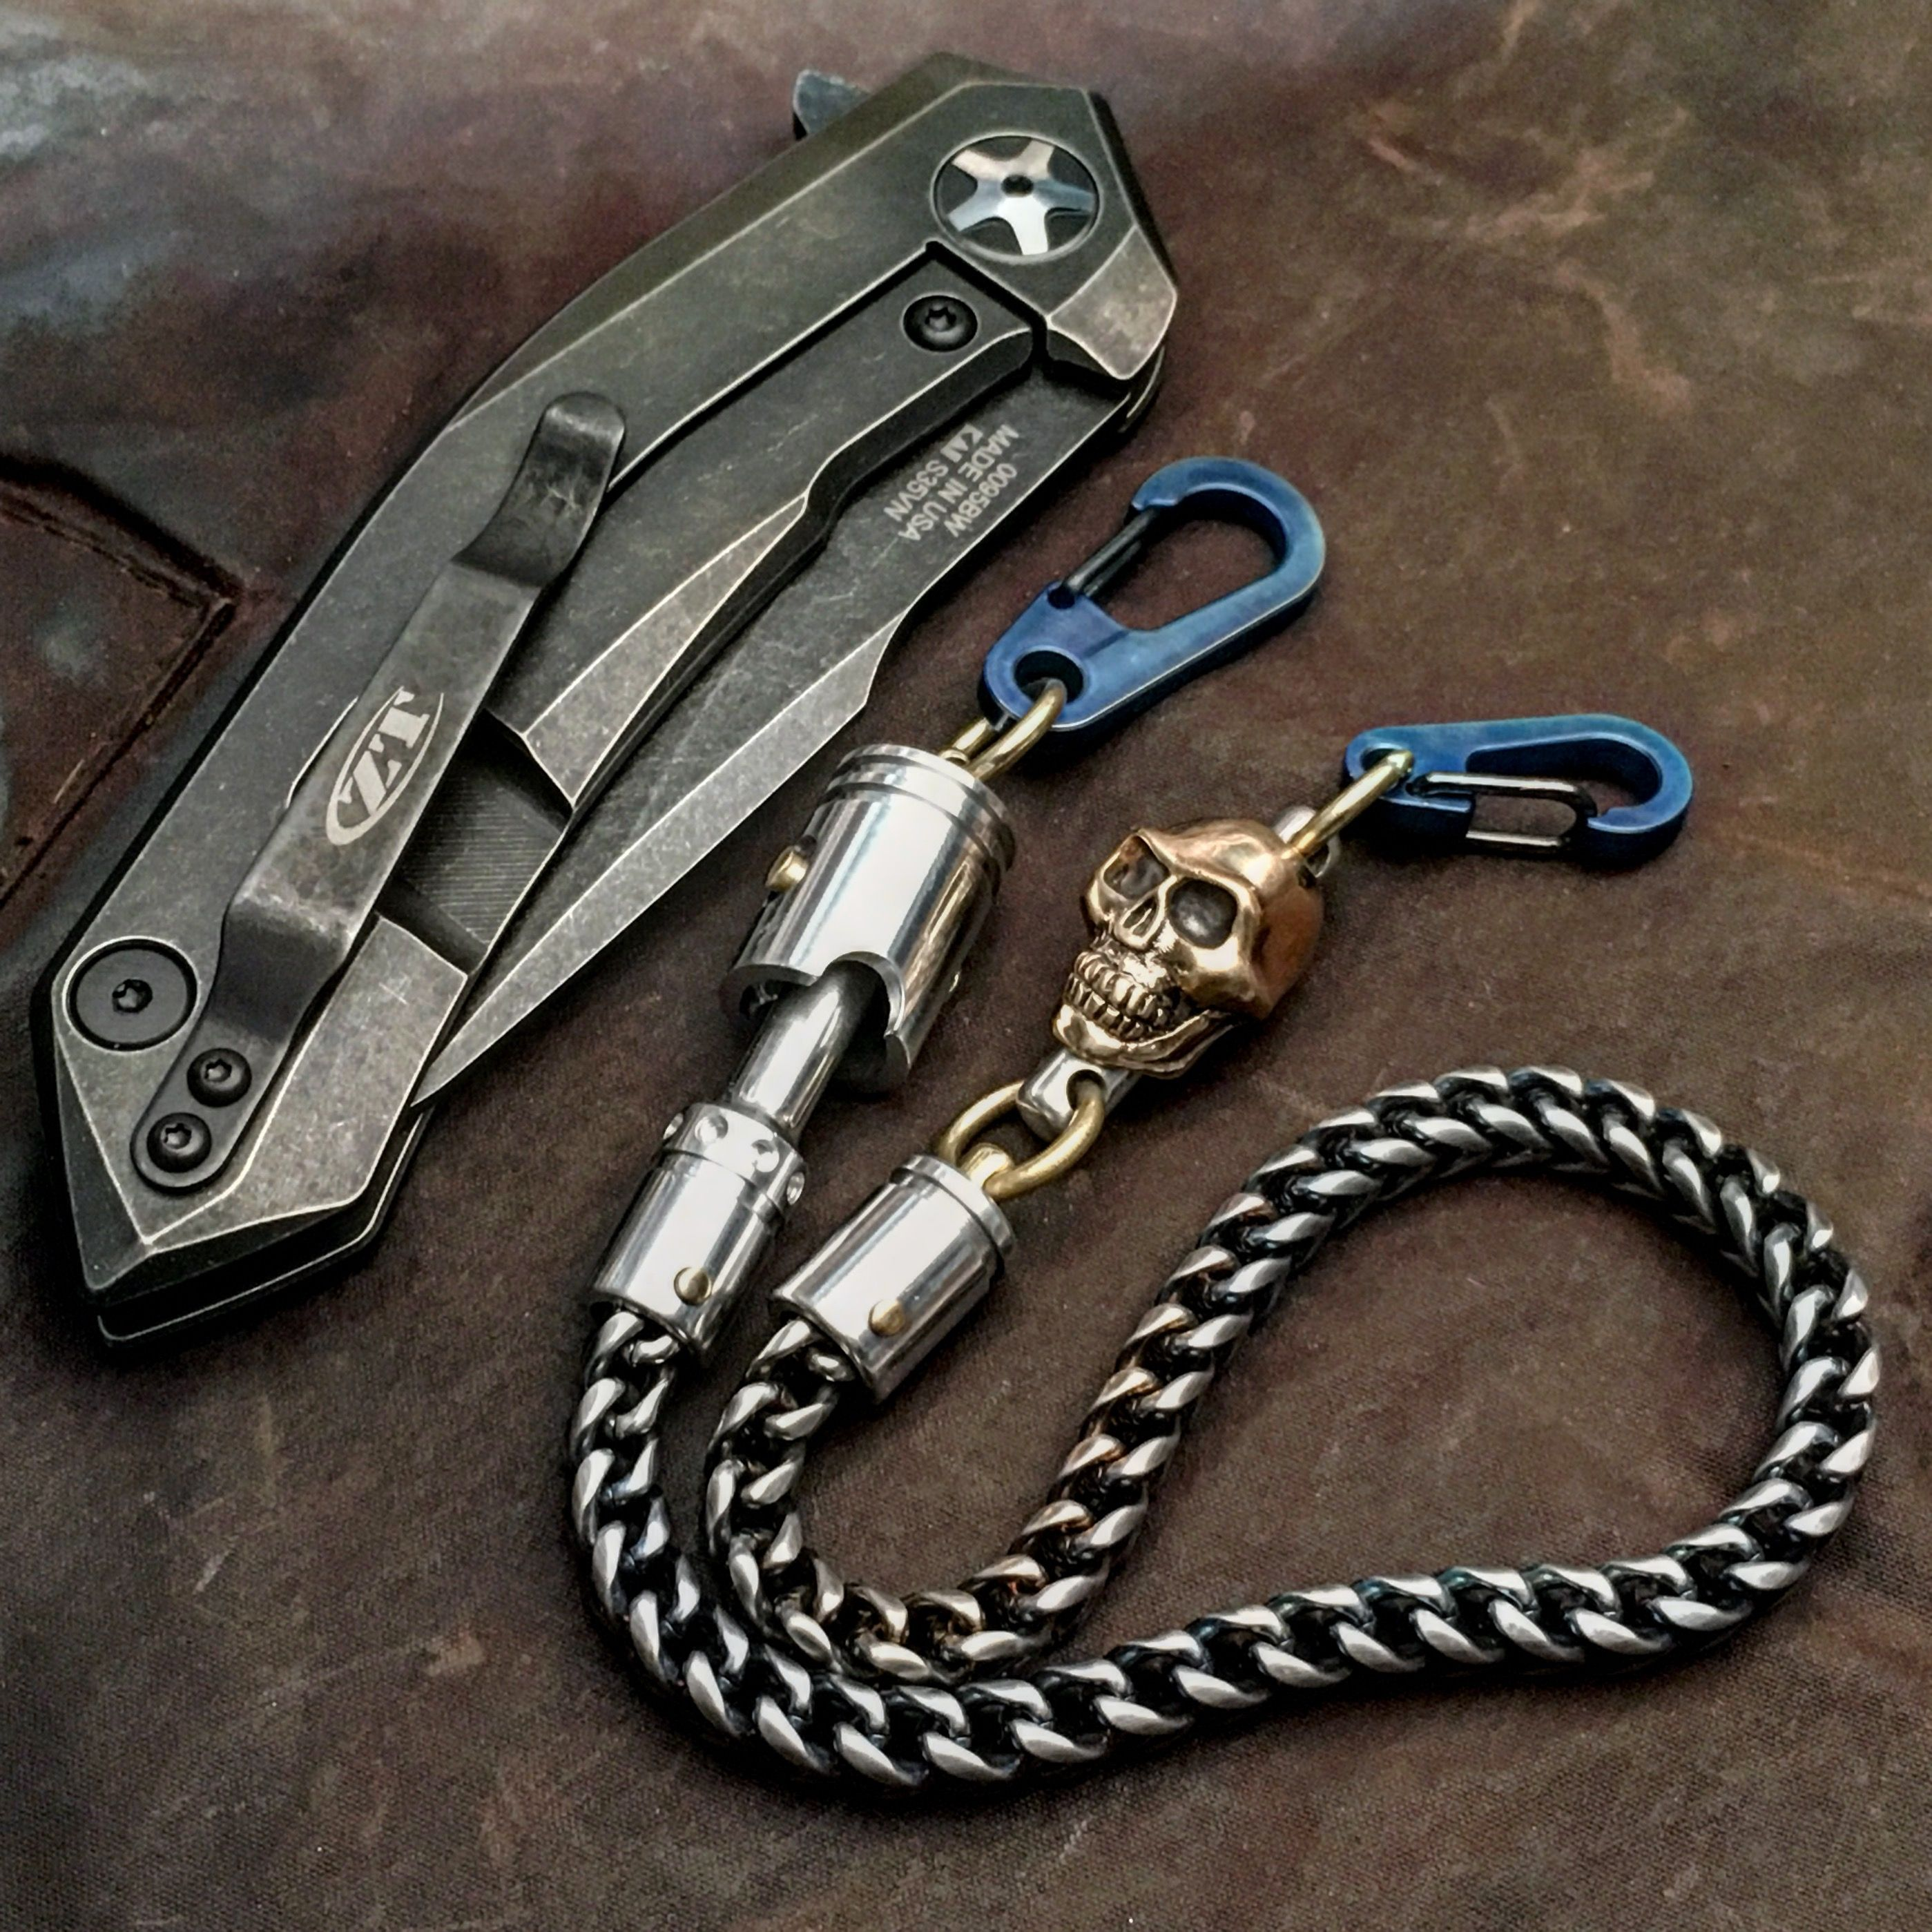 Small Wallet Chain: Titanium carabiners, Stanley Steel ...